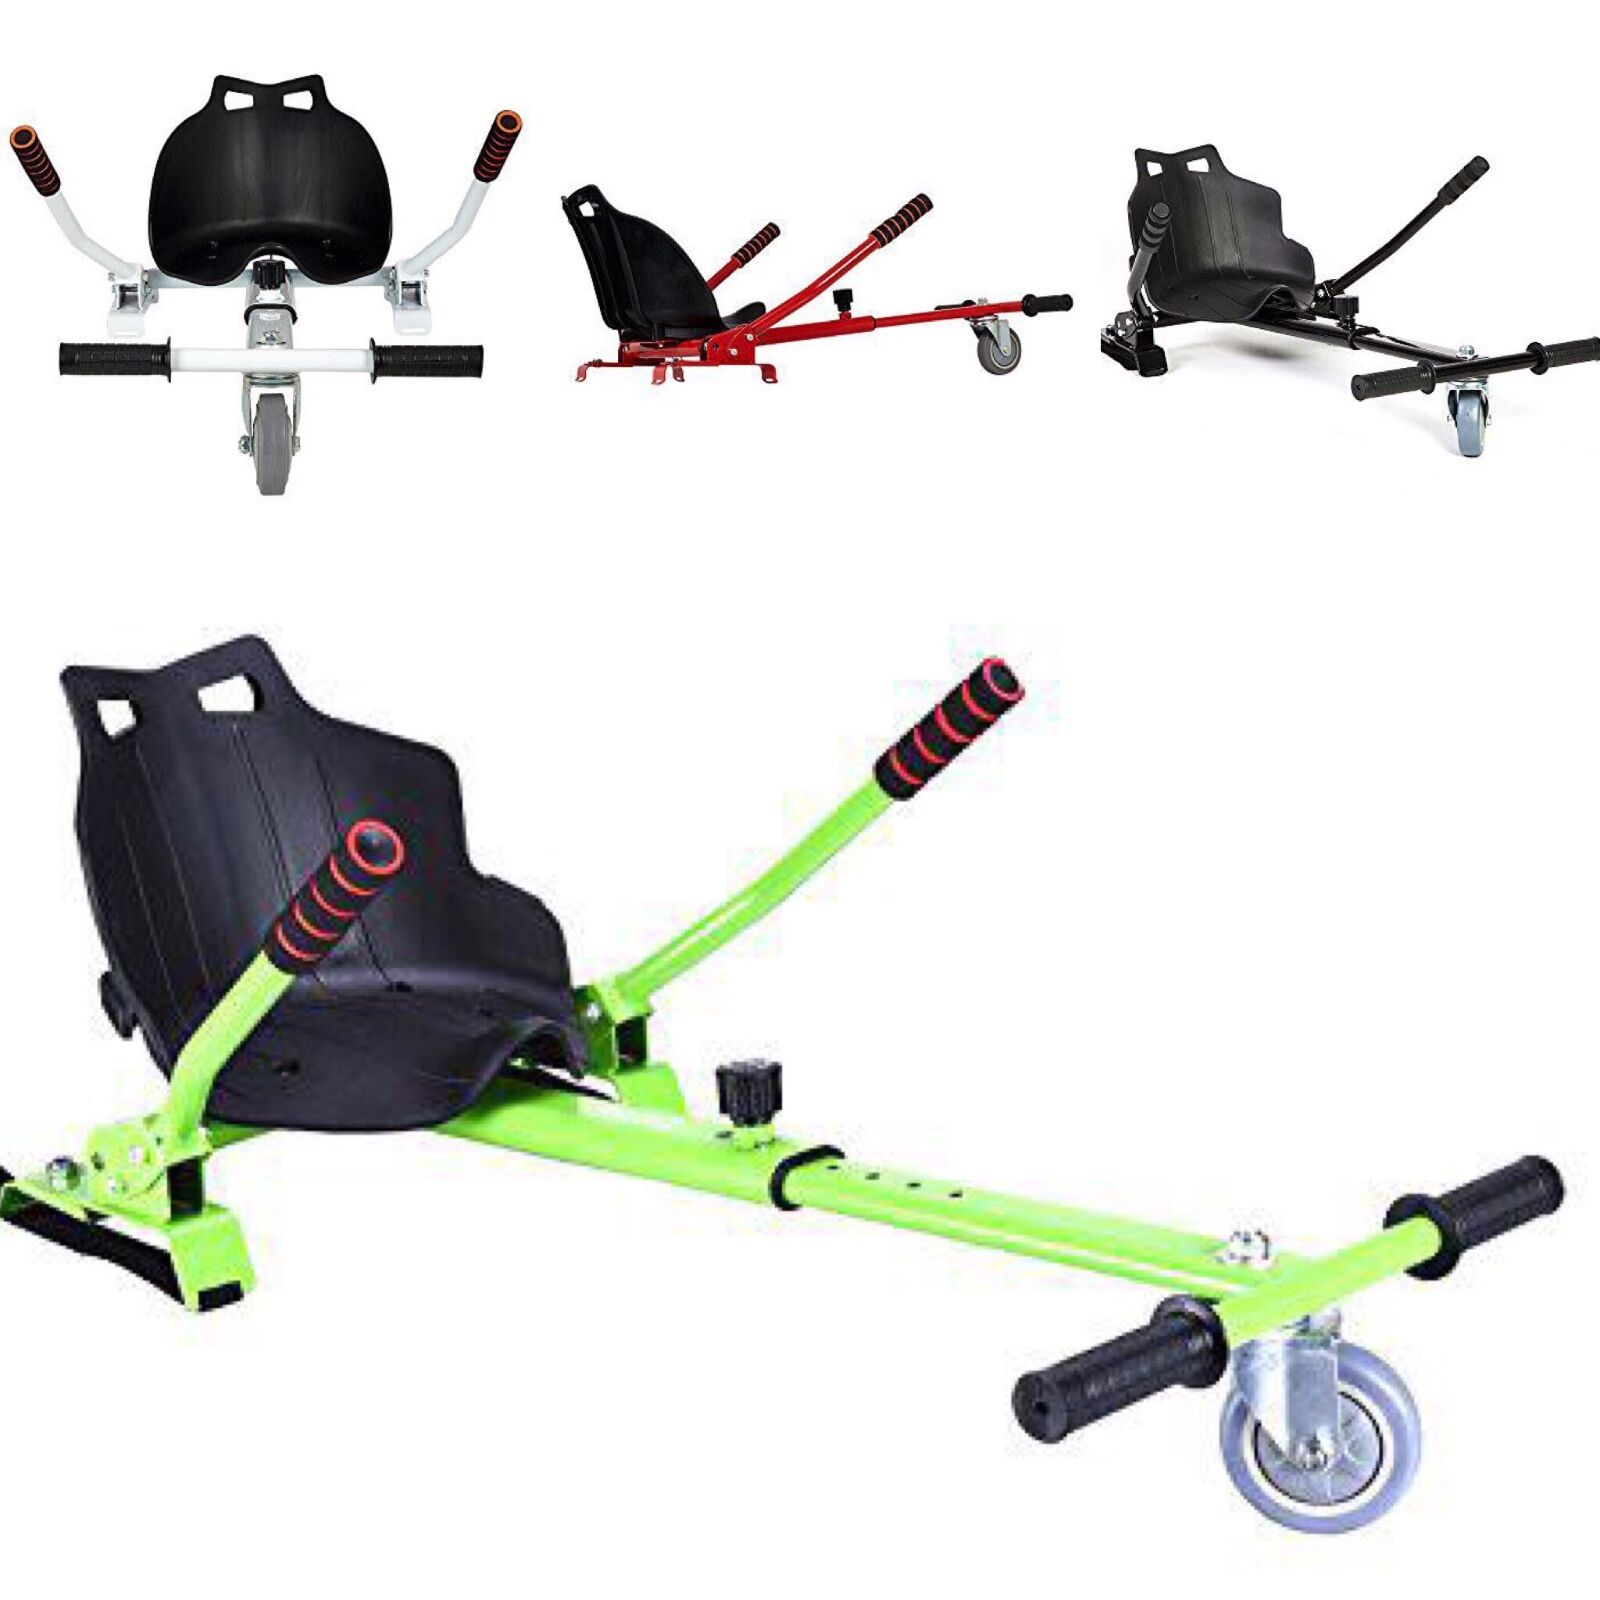 Seat Bearing Electric Hoverboard Hoverkart Hoverseat Different Colours